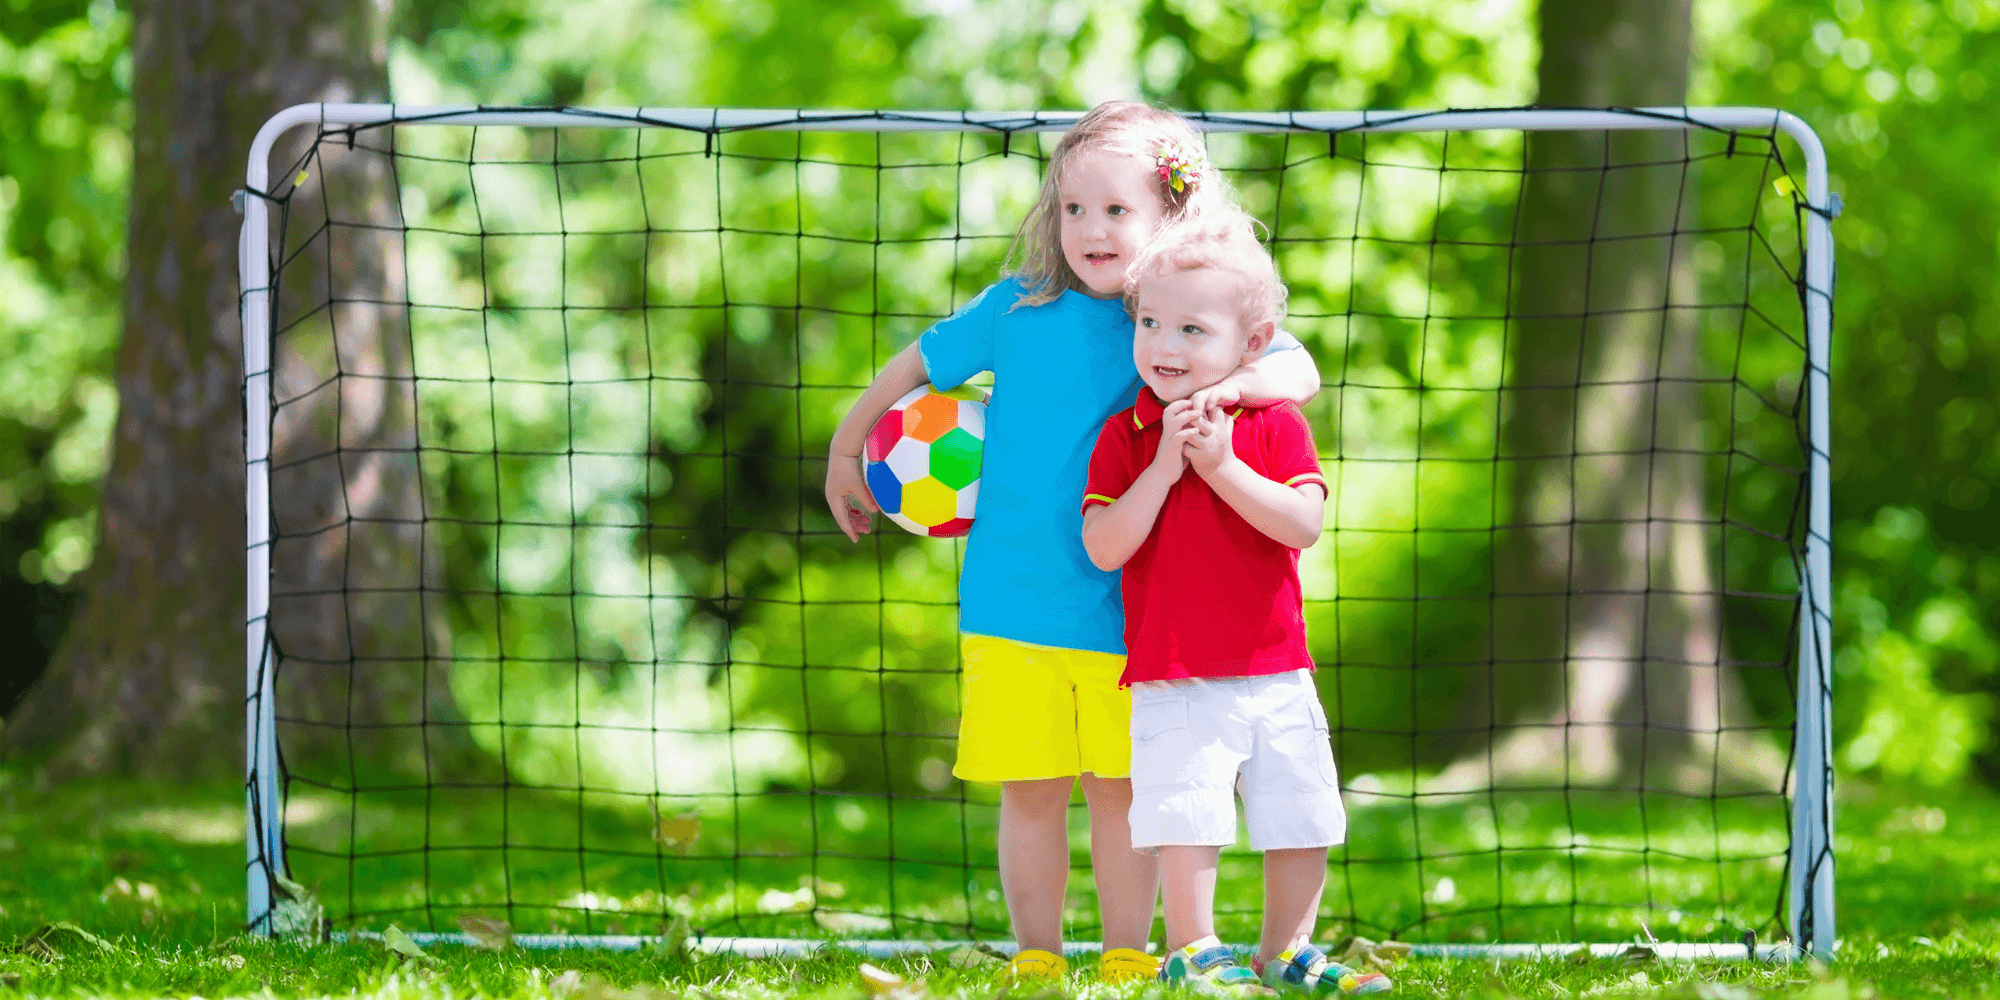 Siblings playing with football